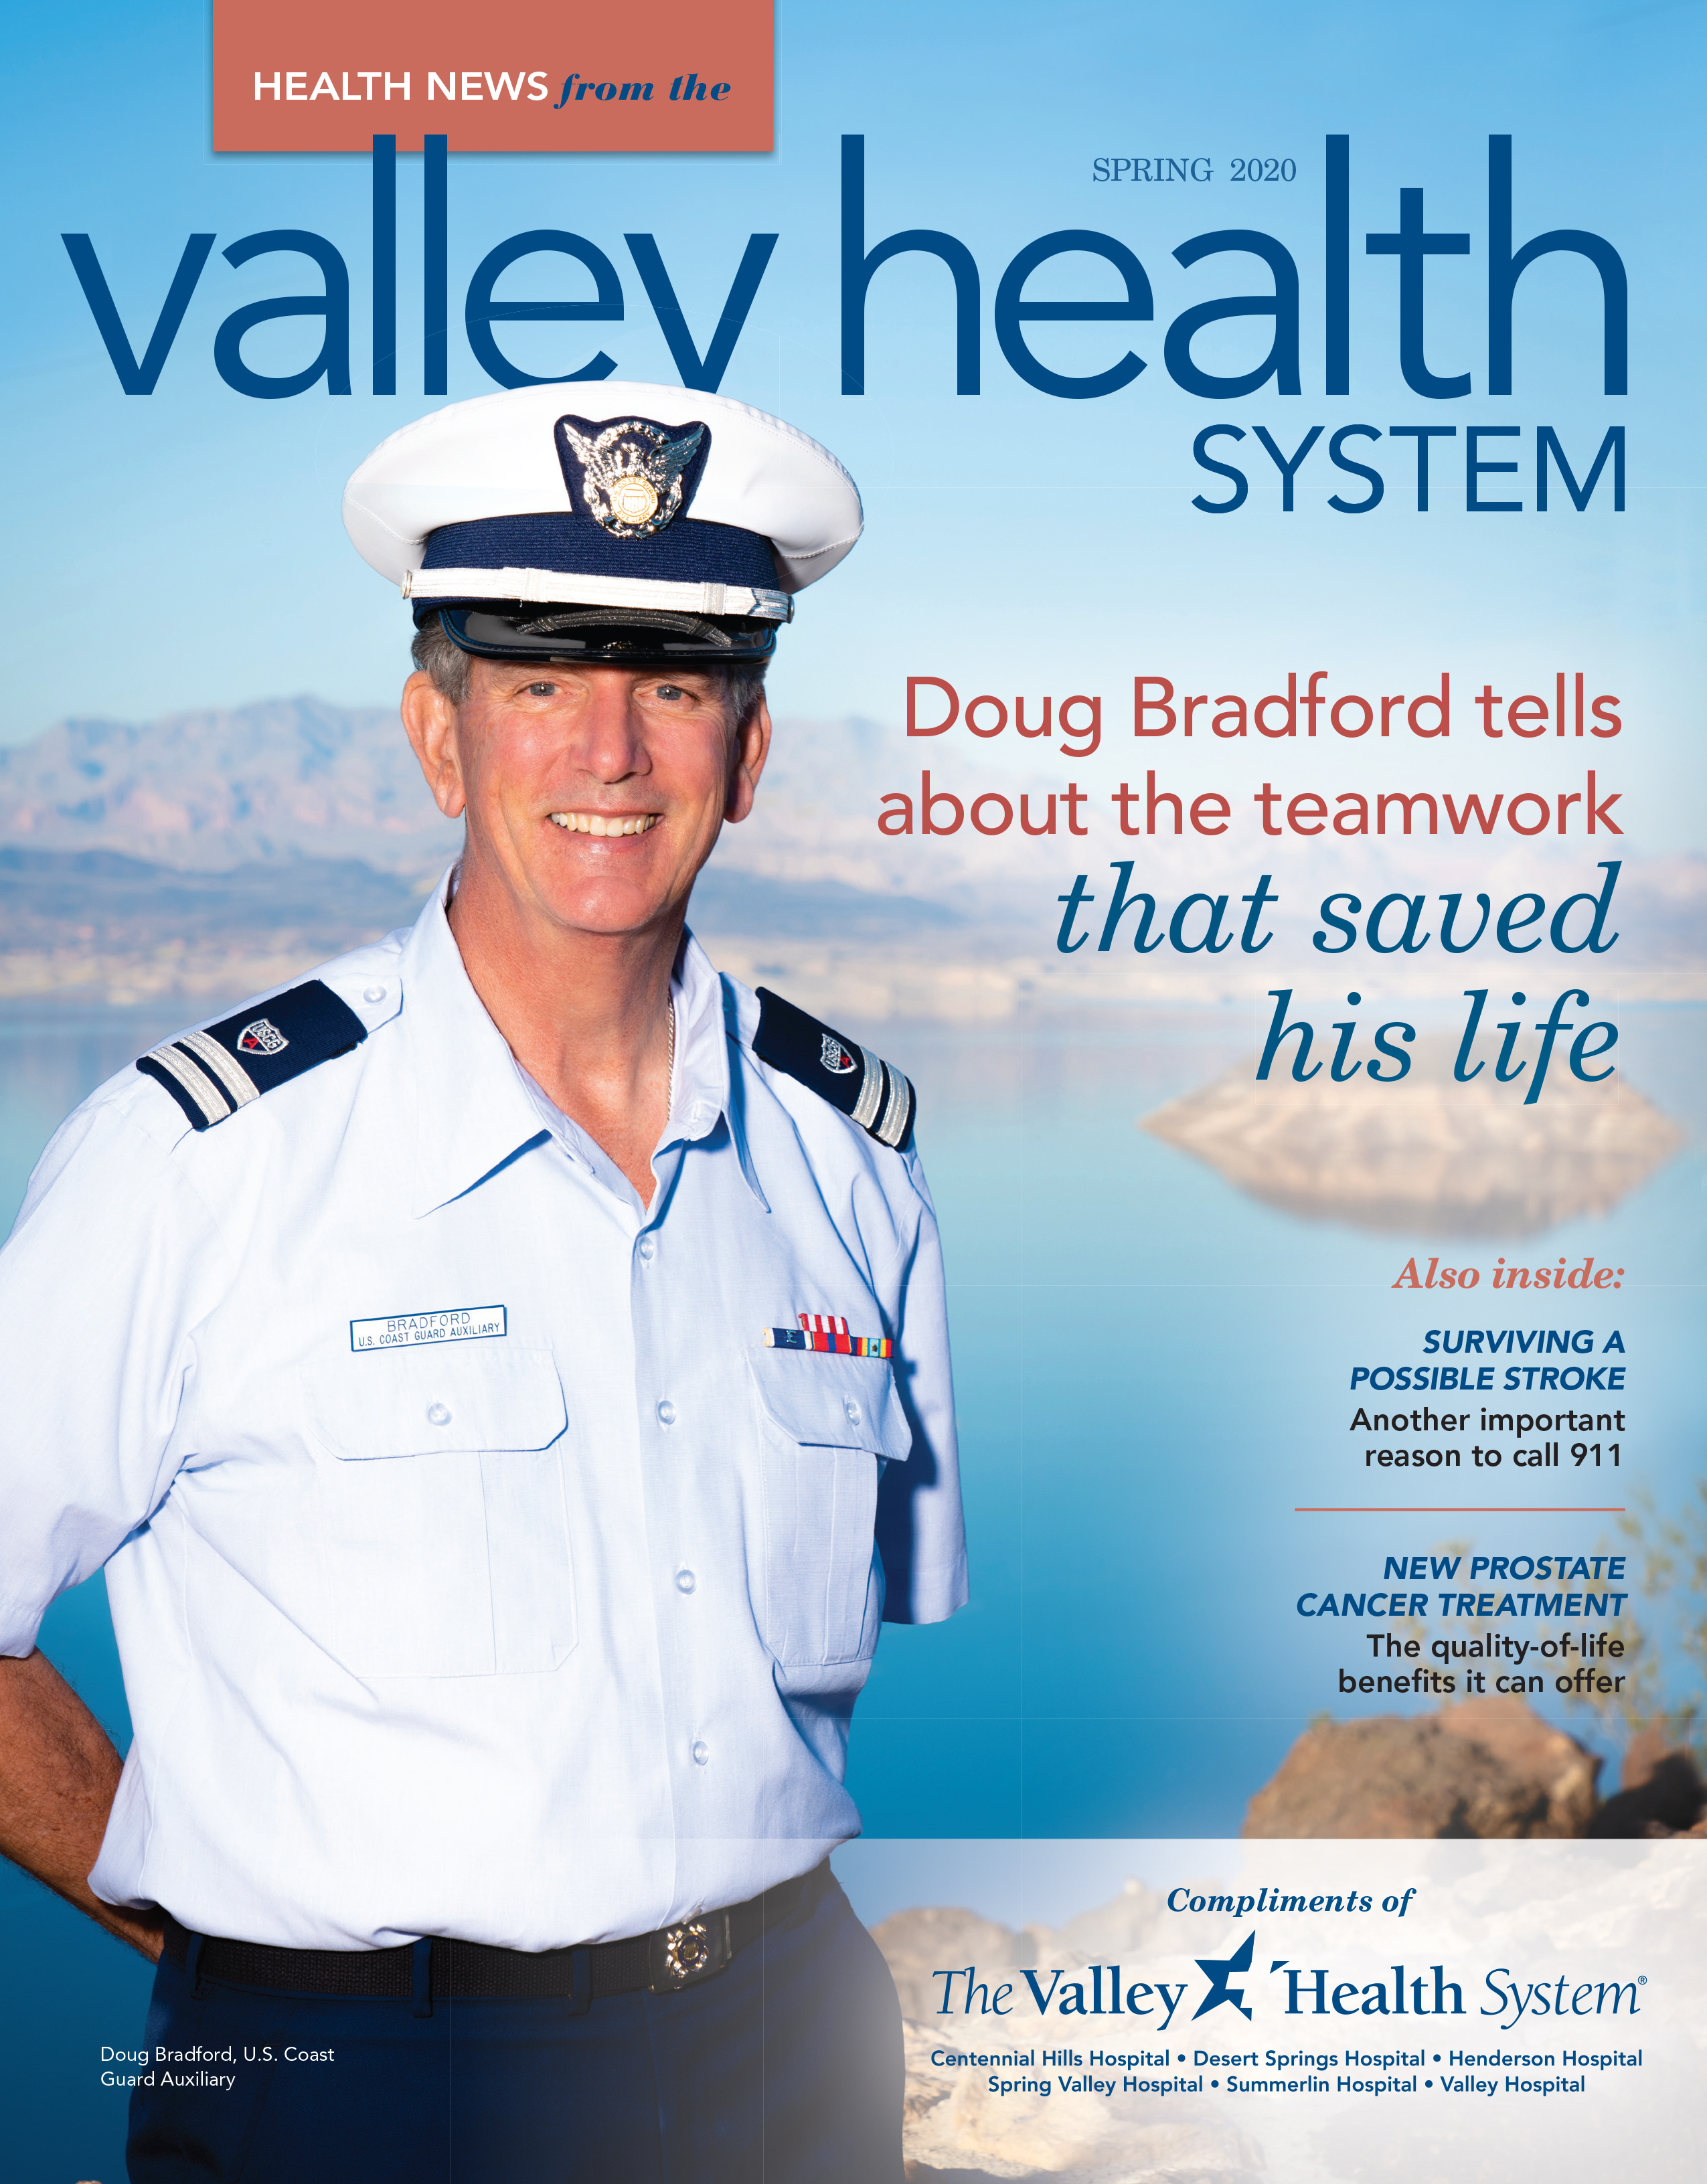 Valley Health System Health News Spring 2020 cover